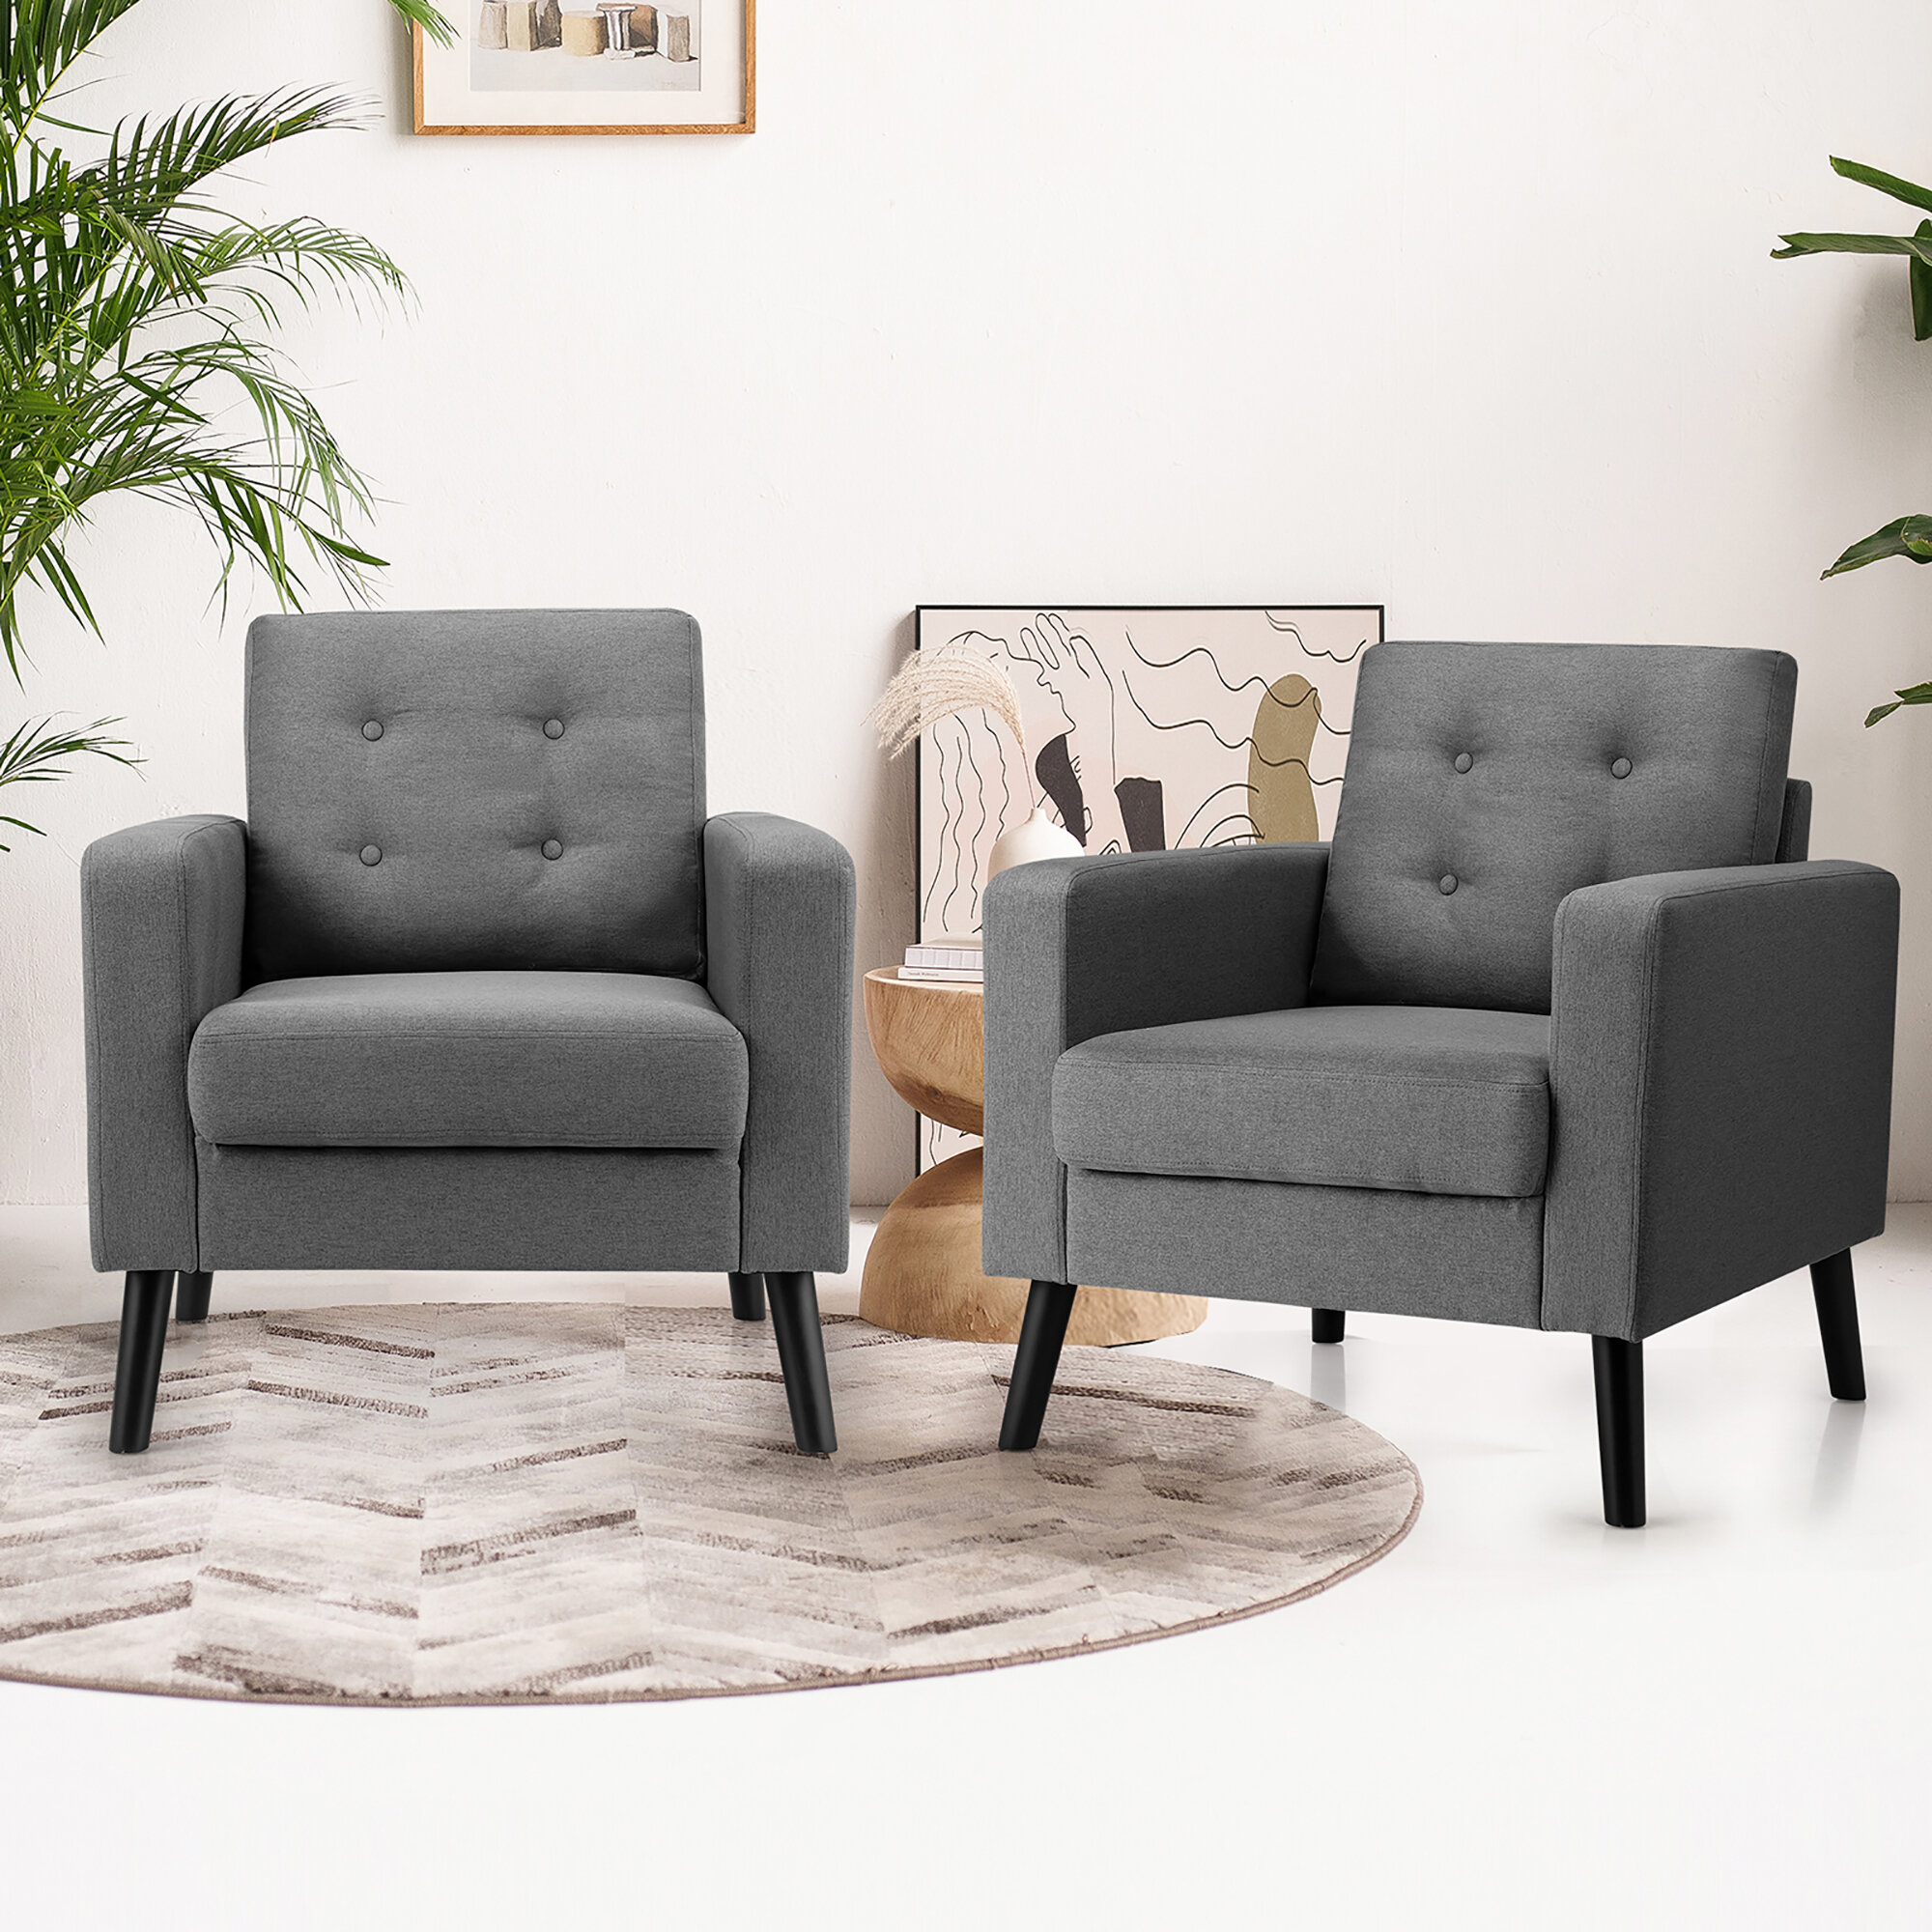 Arm Modern & Contemporary Accent Chairs You'Ll Love In 2021 Regarding Armory Fabric Armchairs (View 9 of 15)